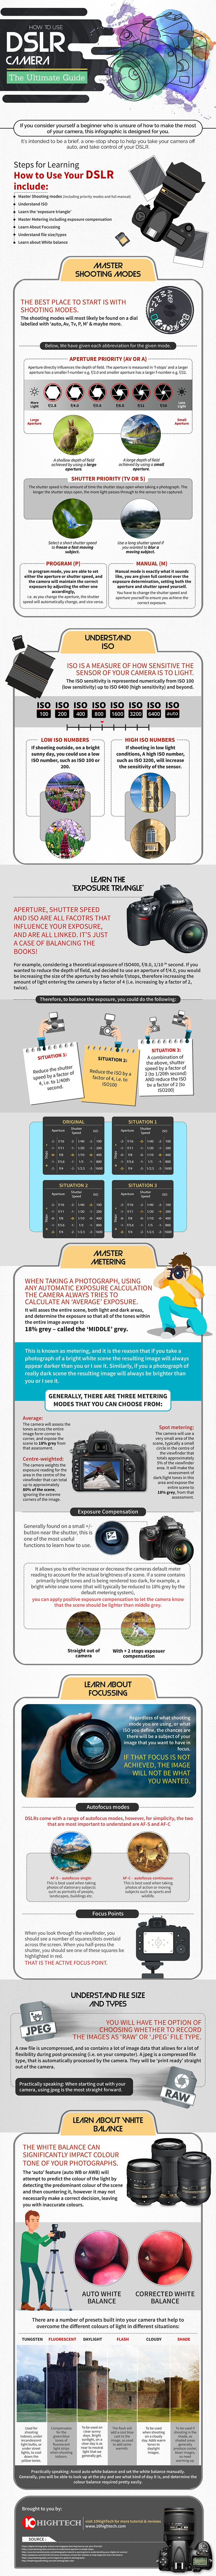 How-to-Use-DSLR-Camera-cheat-sheet-infographic-plaza